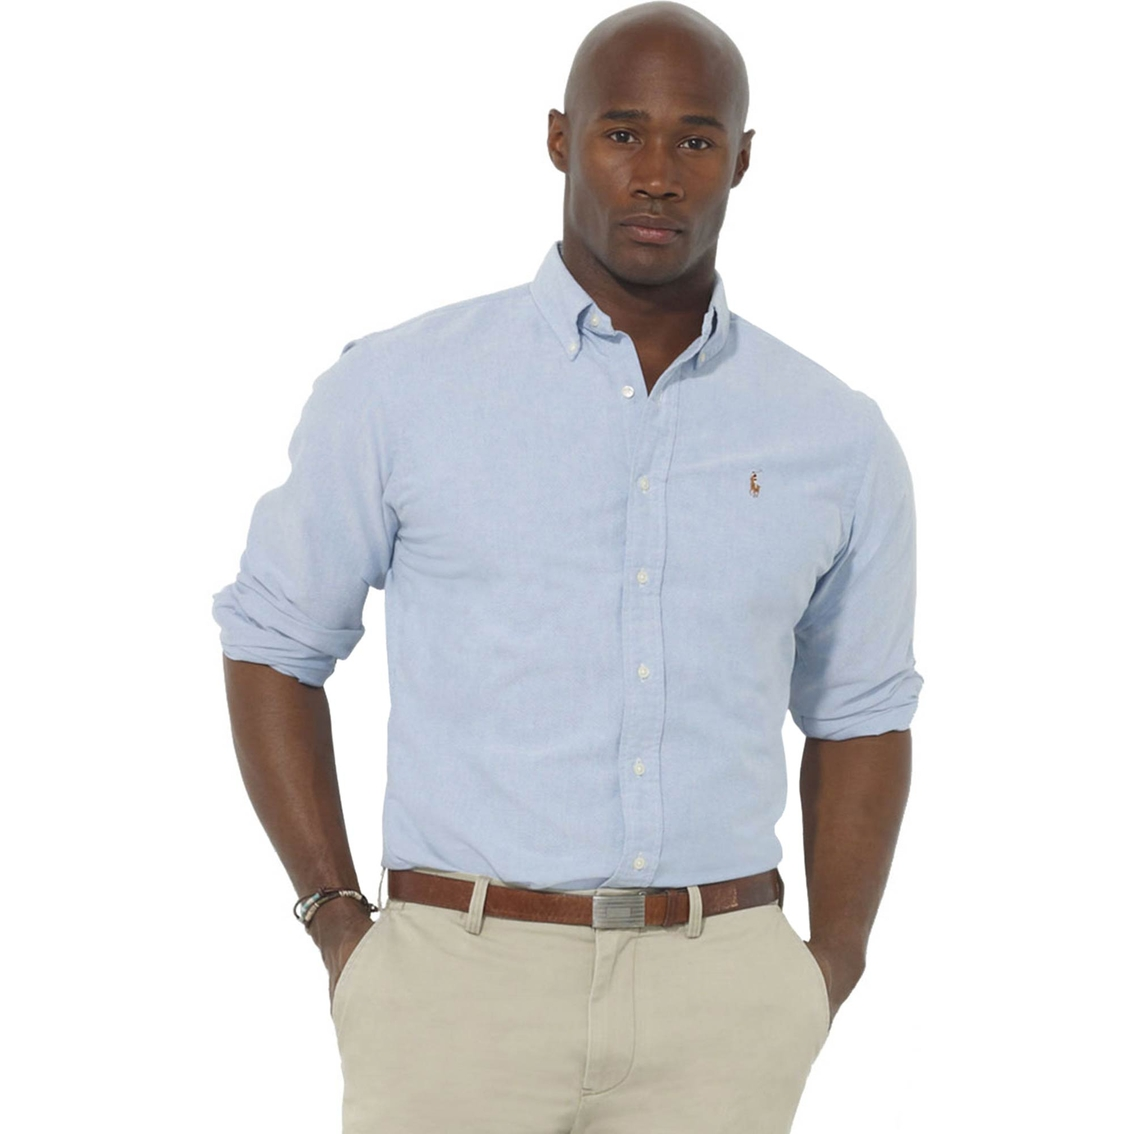 05c081bafd2 Polo Ralph Lauren Big & Tall Classic Fit Solid Oxford Sport Shirt ...